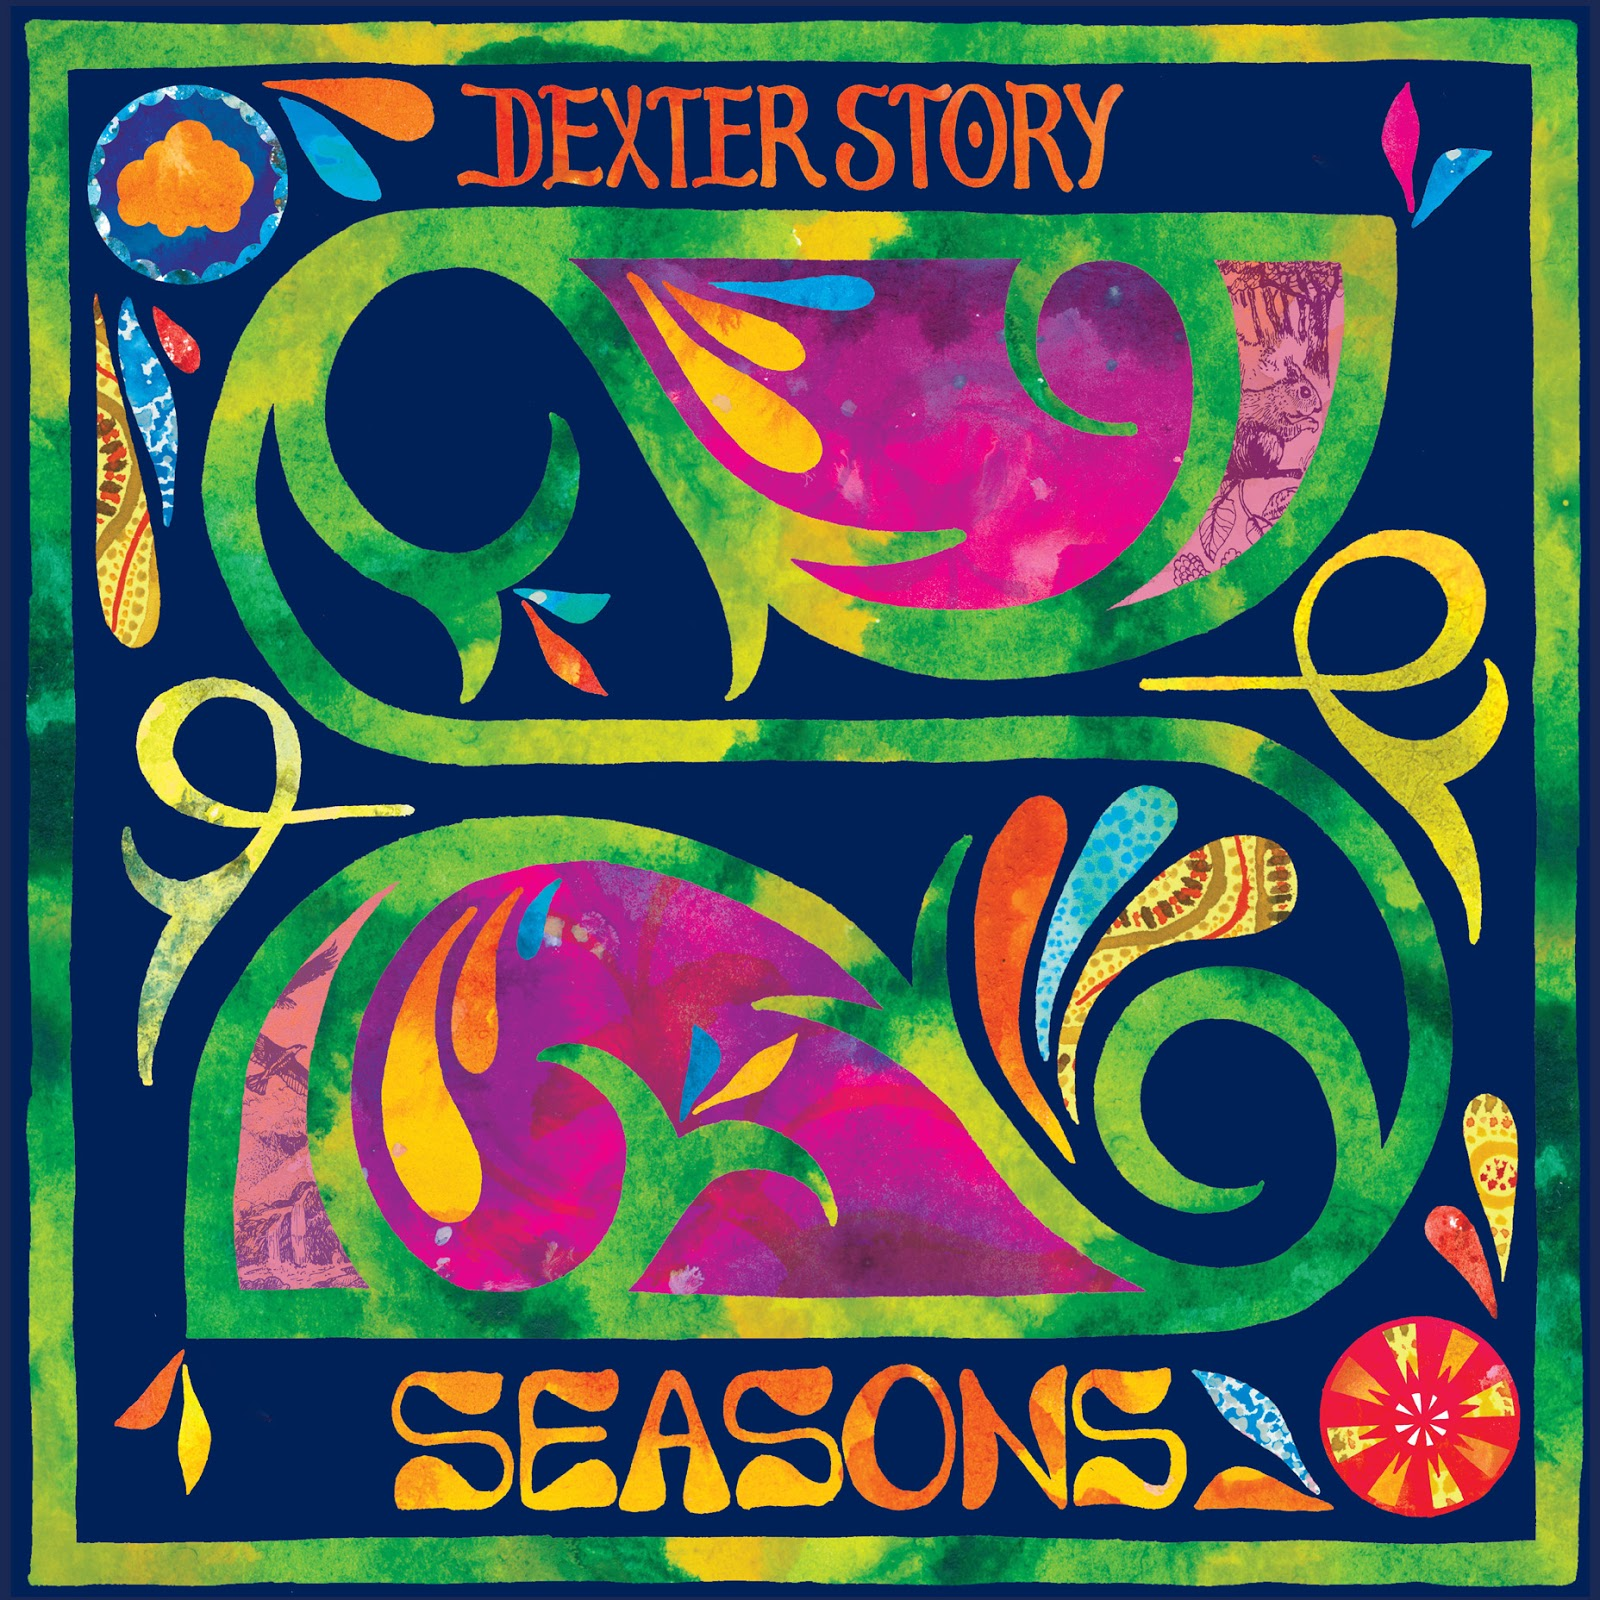 a story of dexter Veggie wondem combo(ras g afrikan space program remix)在线试听,dexter story_veggie wondem combo(ras g afrikan space program remix)mp3下载,酷我音乐网提供.